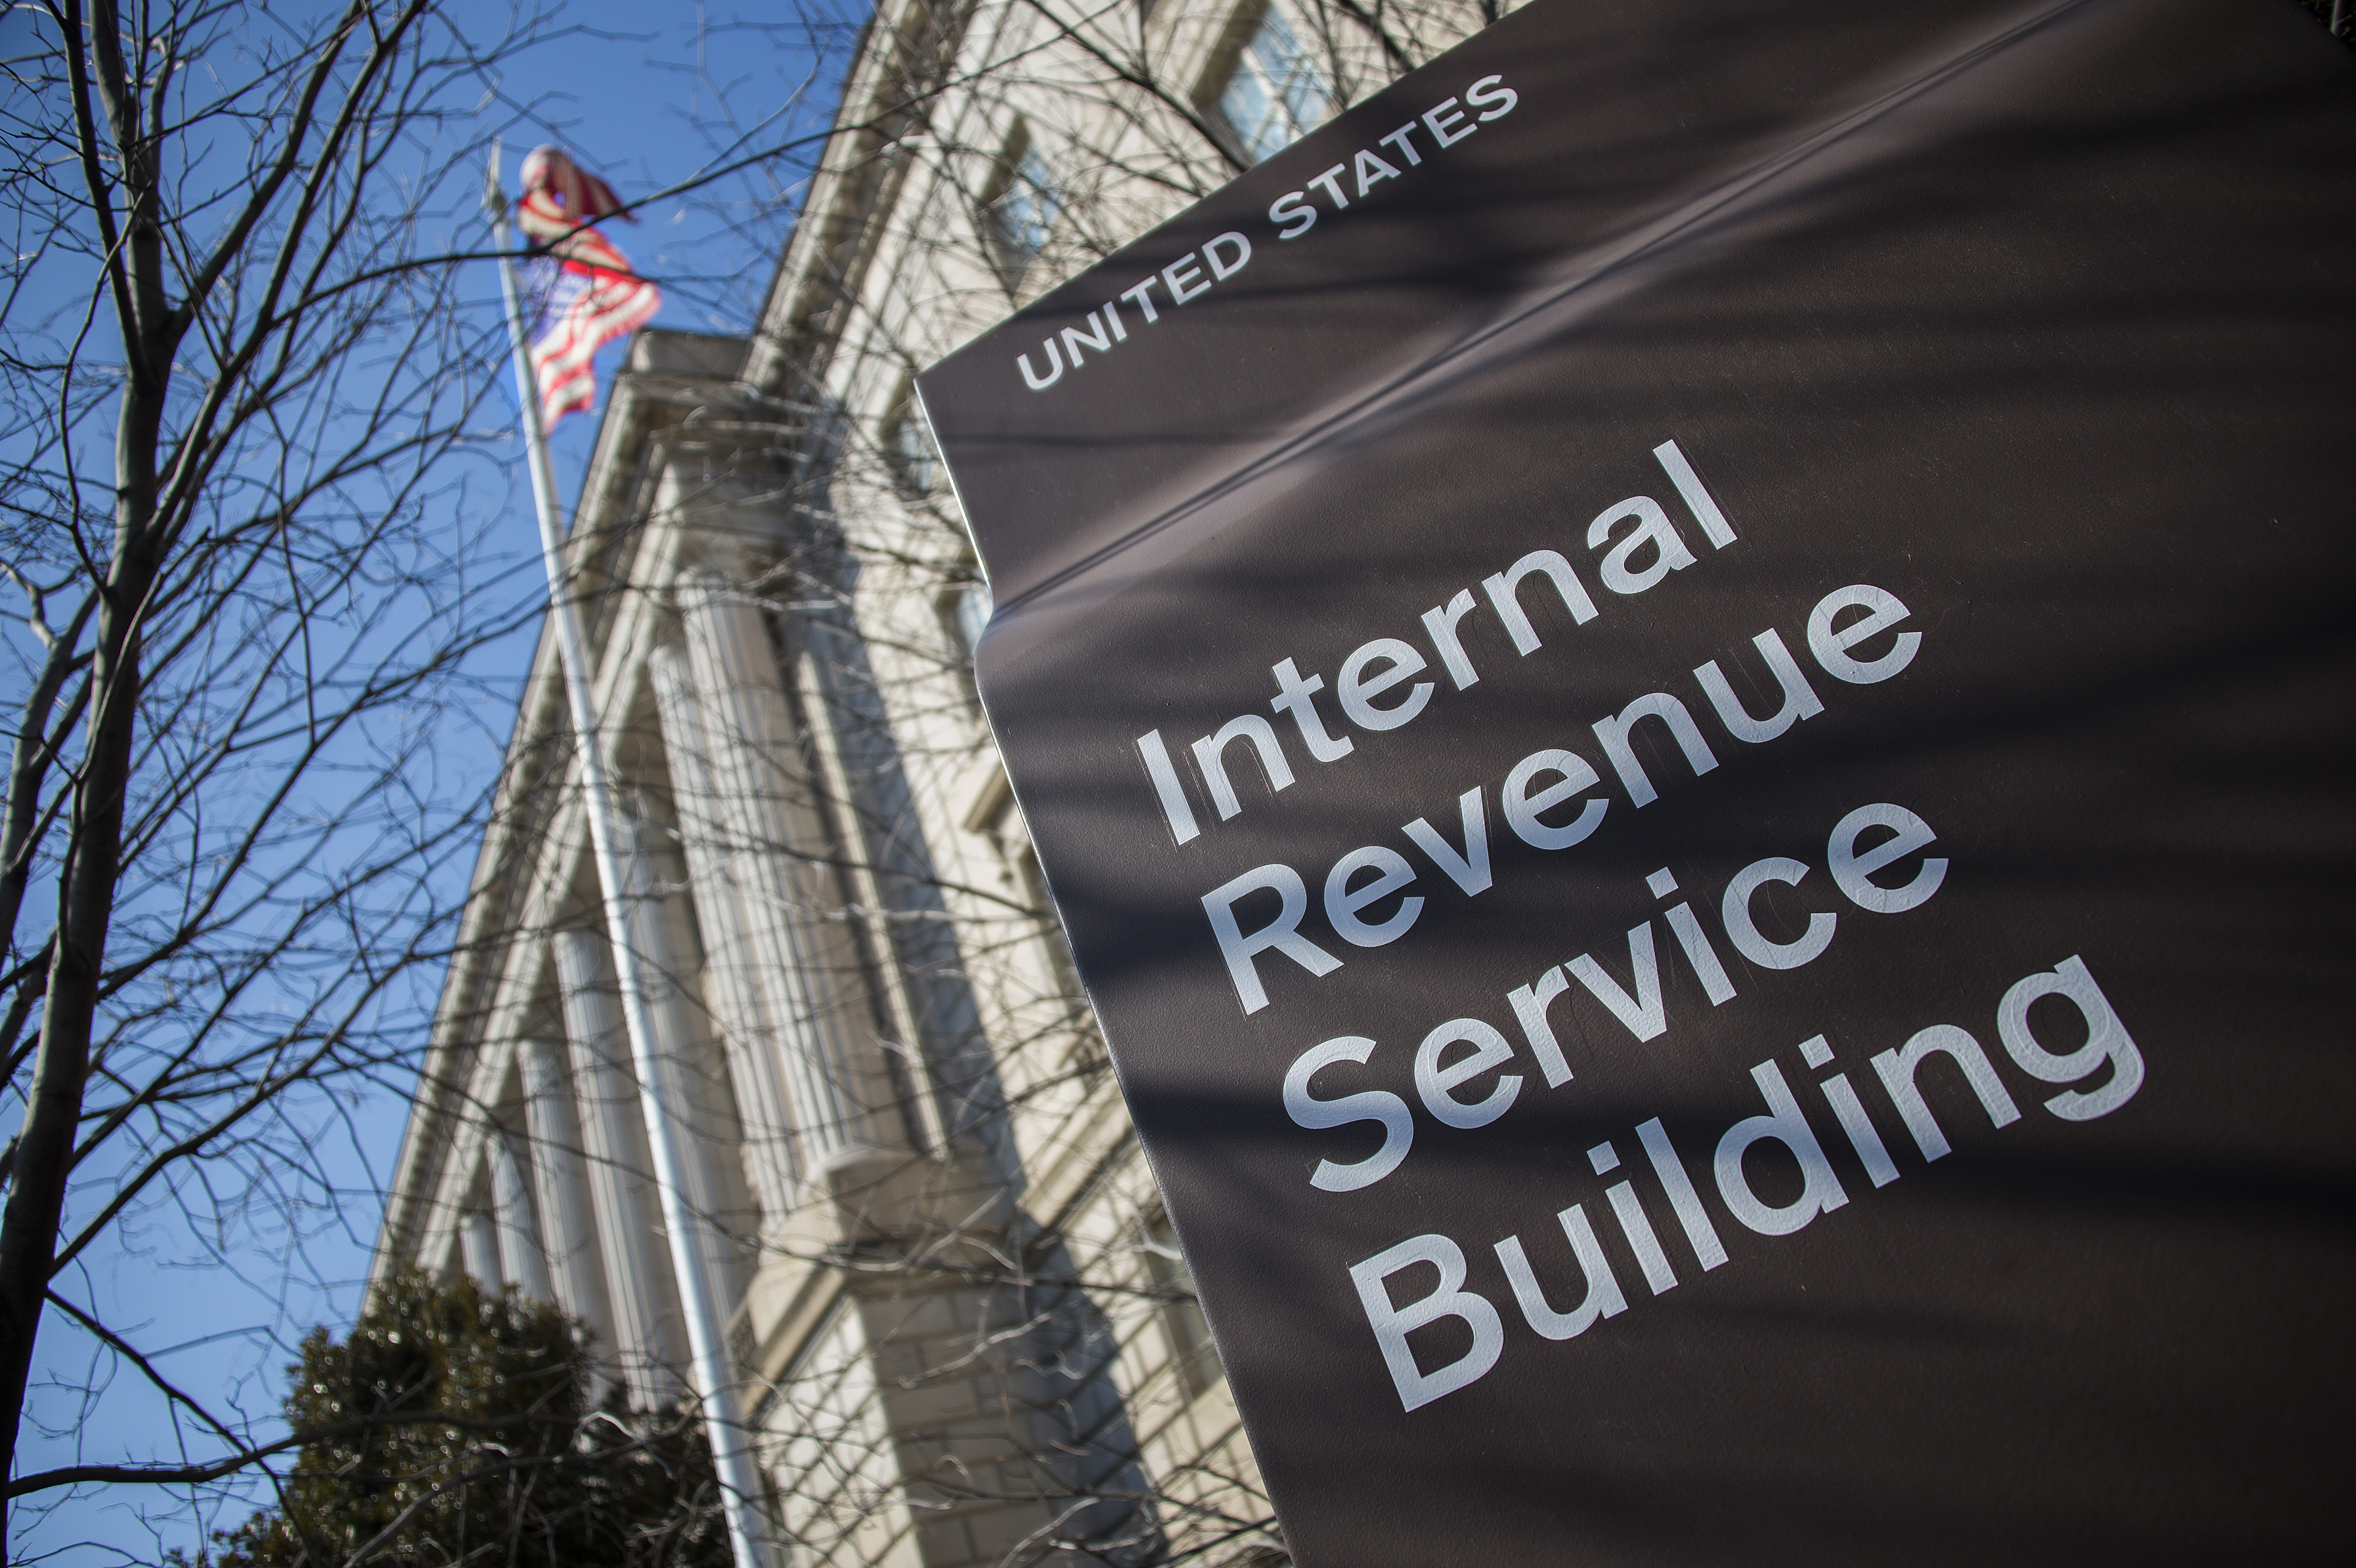 US-POLITCS-IRS-BUILDING